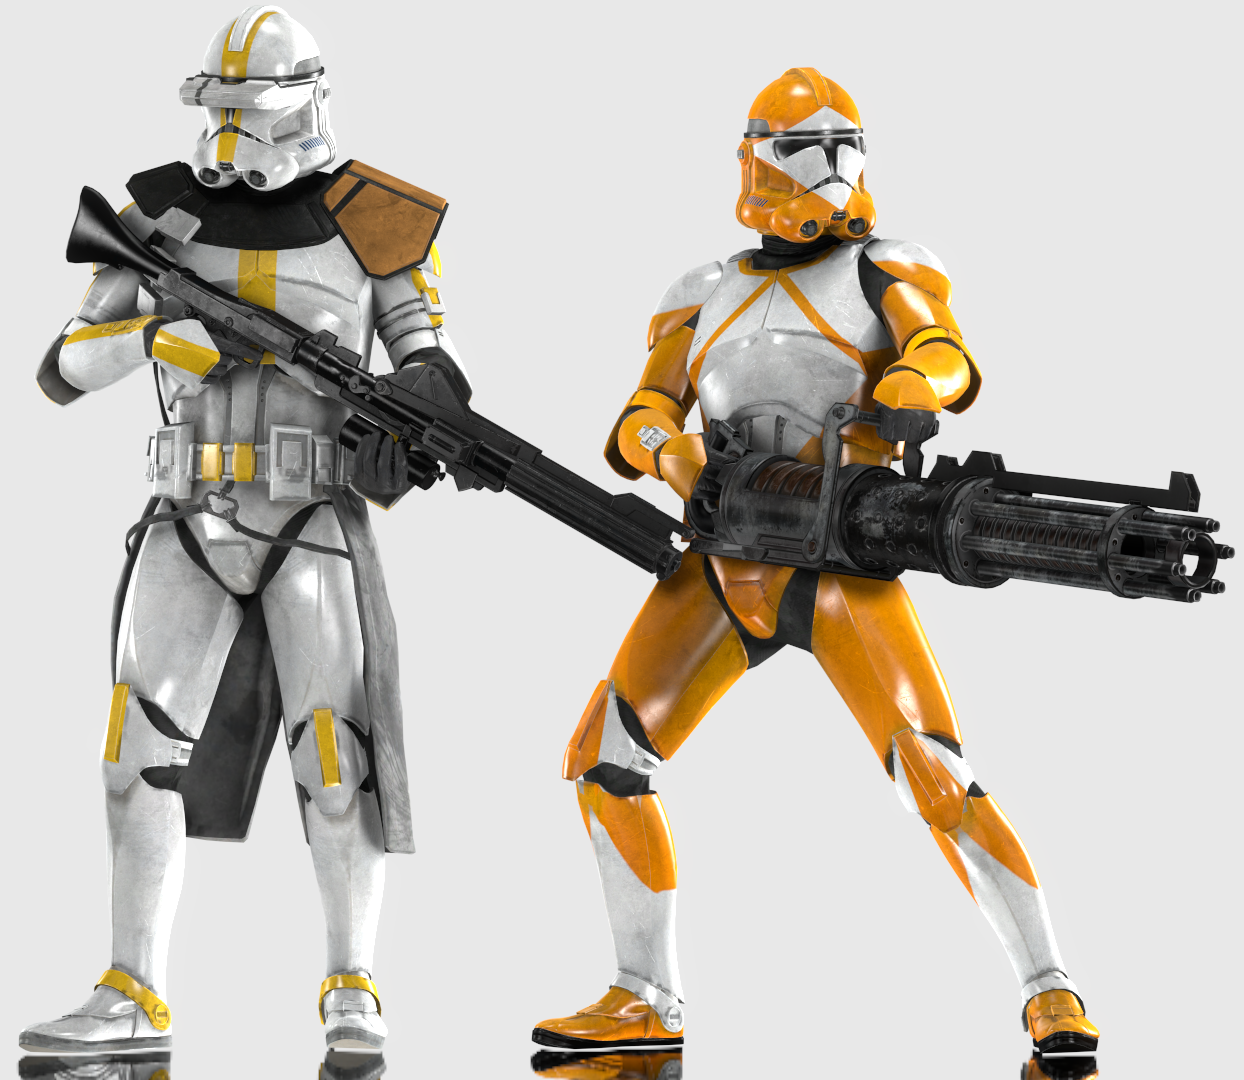 clonetroopers__phase_ii_327th_star_corps_and_eod__by_yare_yare_dong-dbf6s2i.png